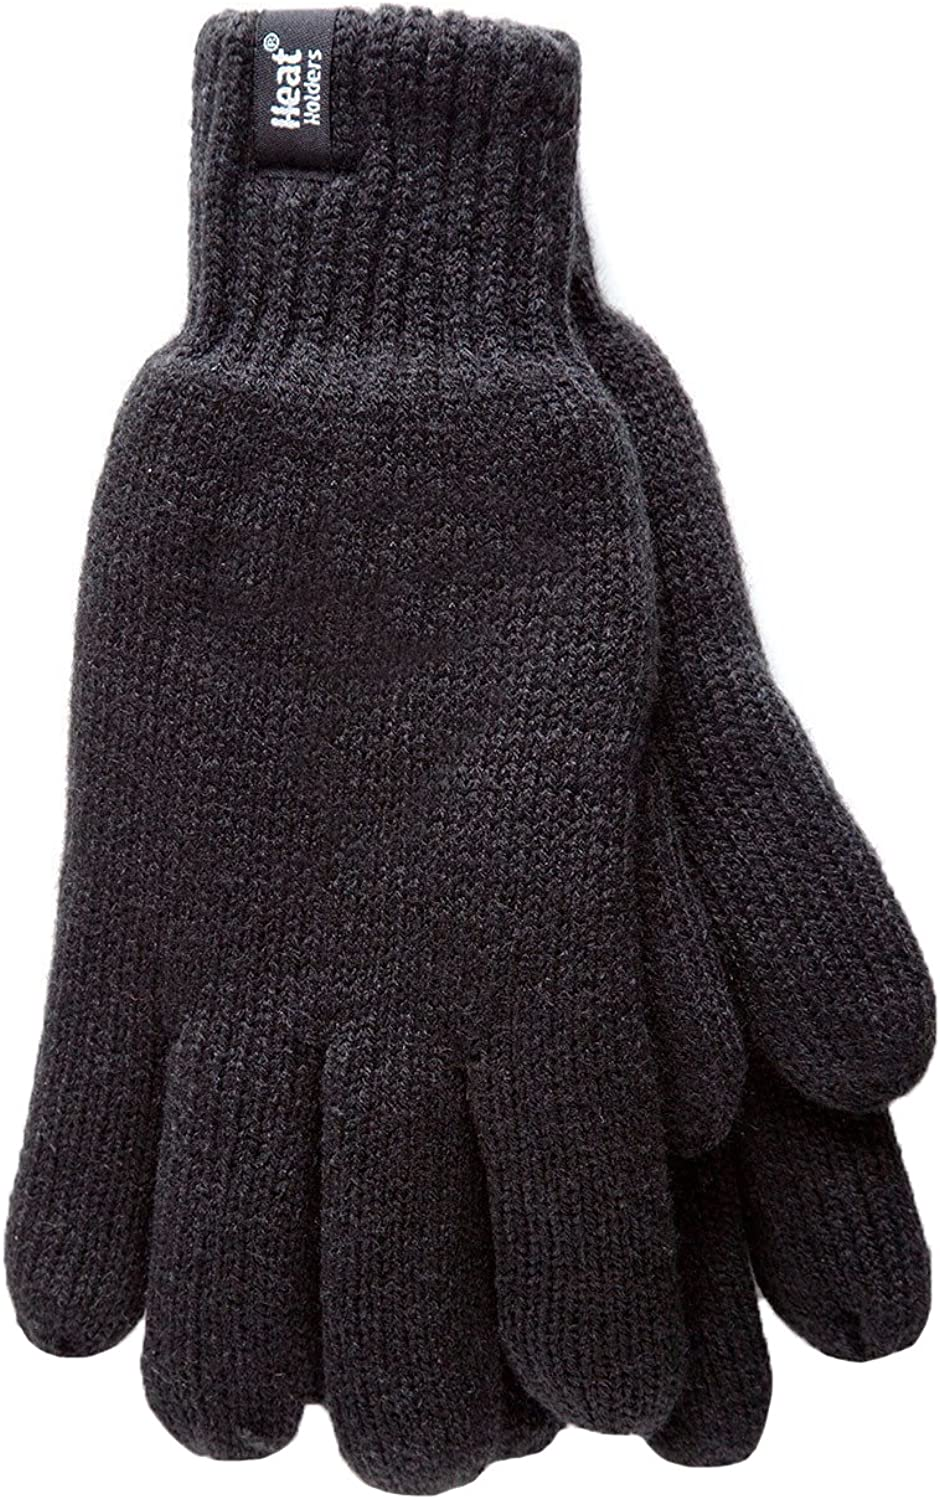 HEAT HOLDERS Herren Handschuhe